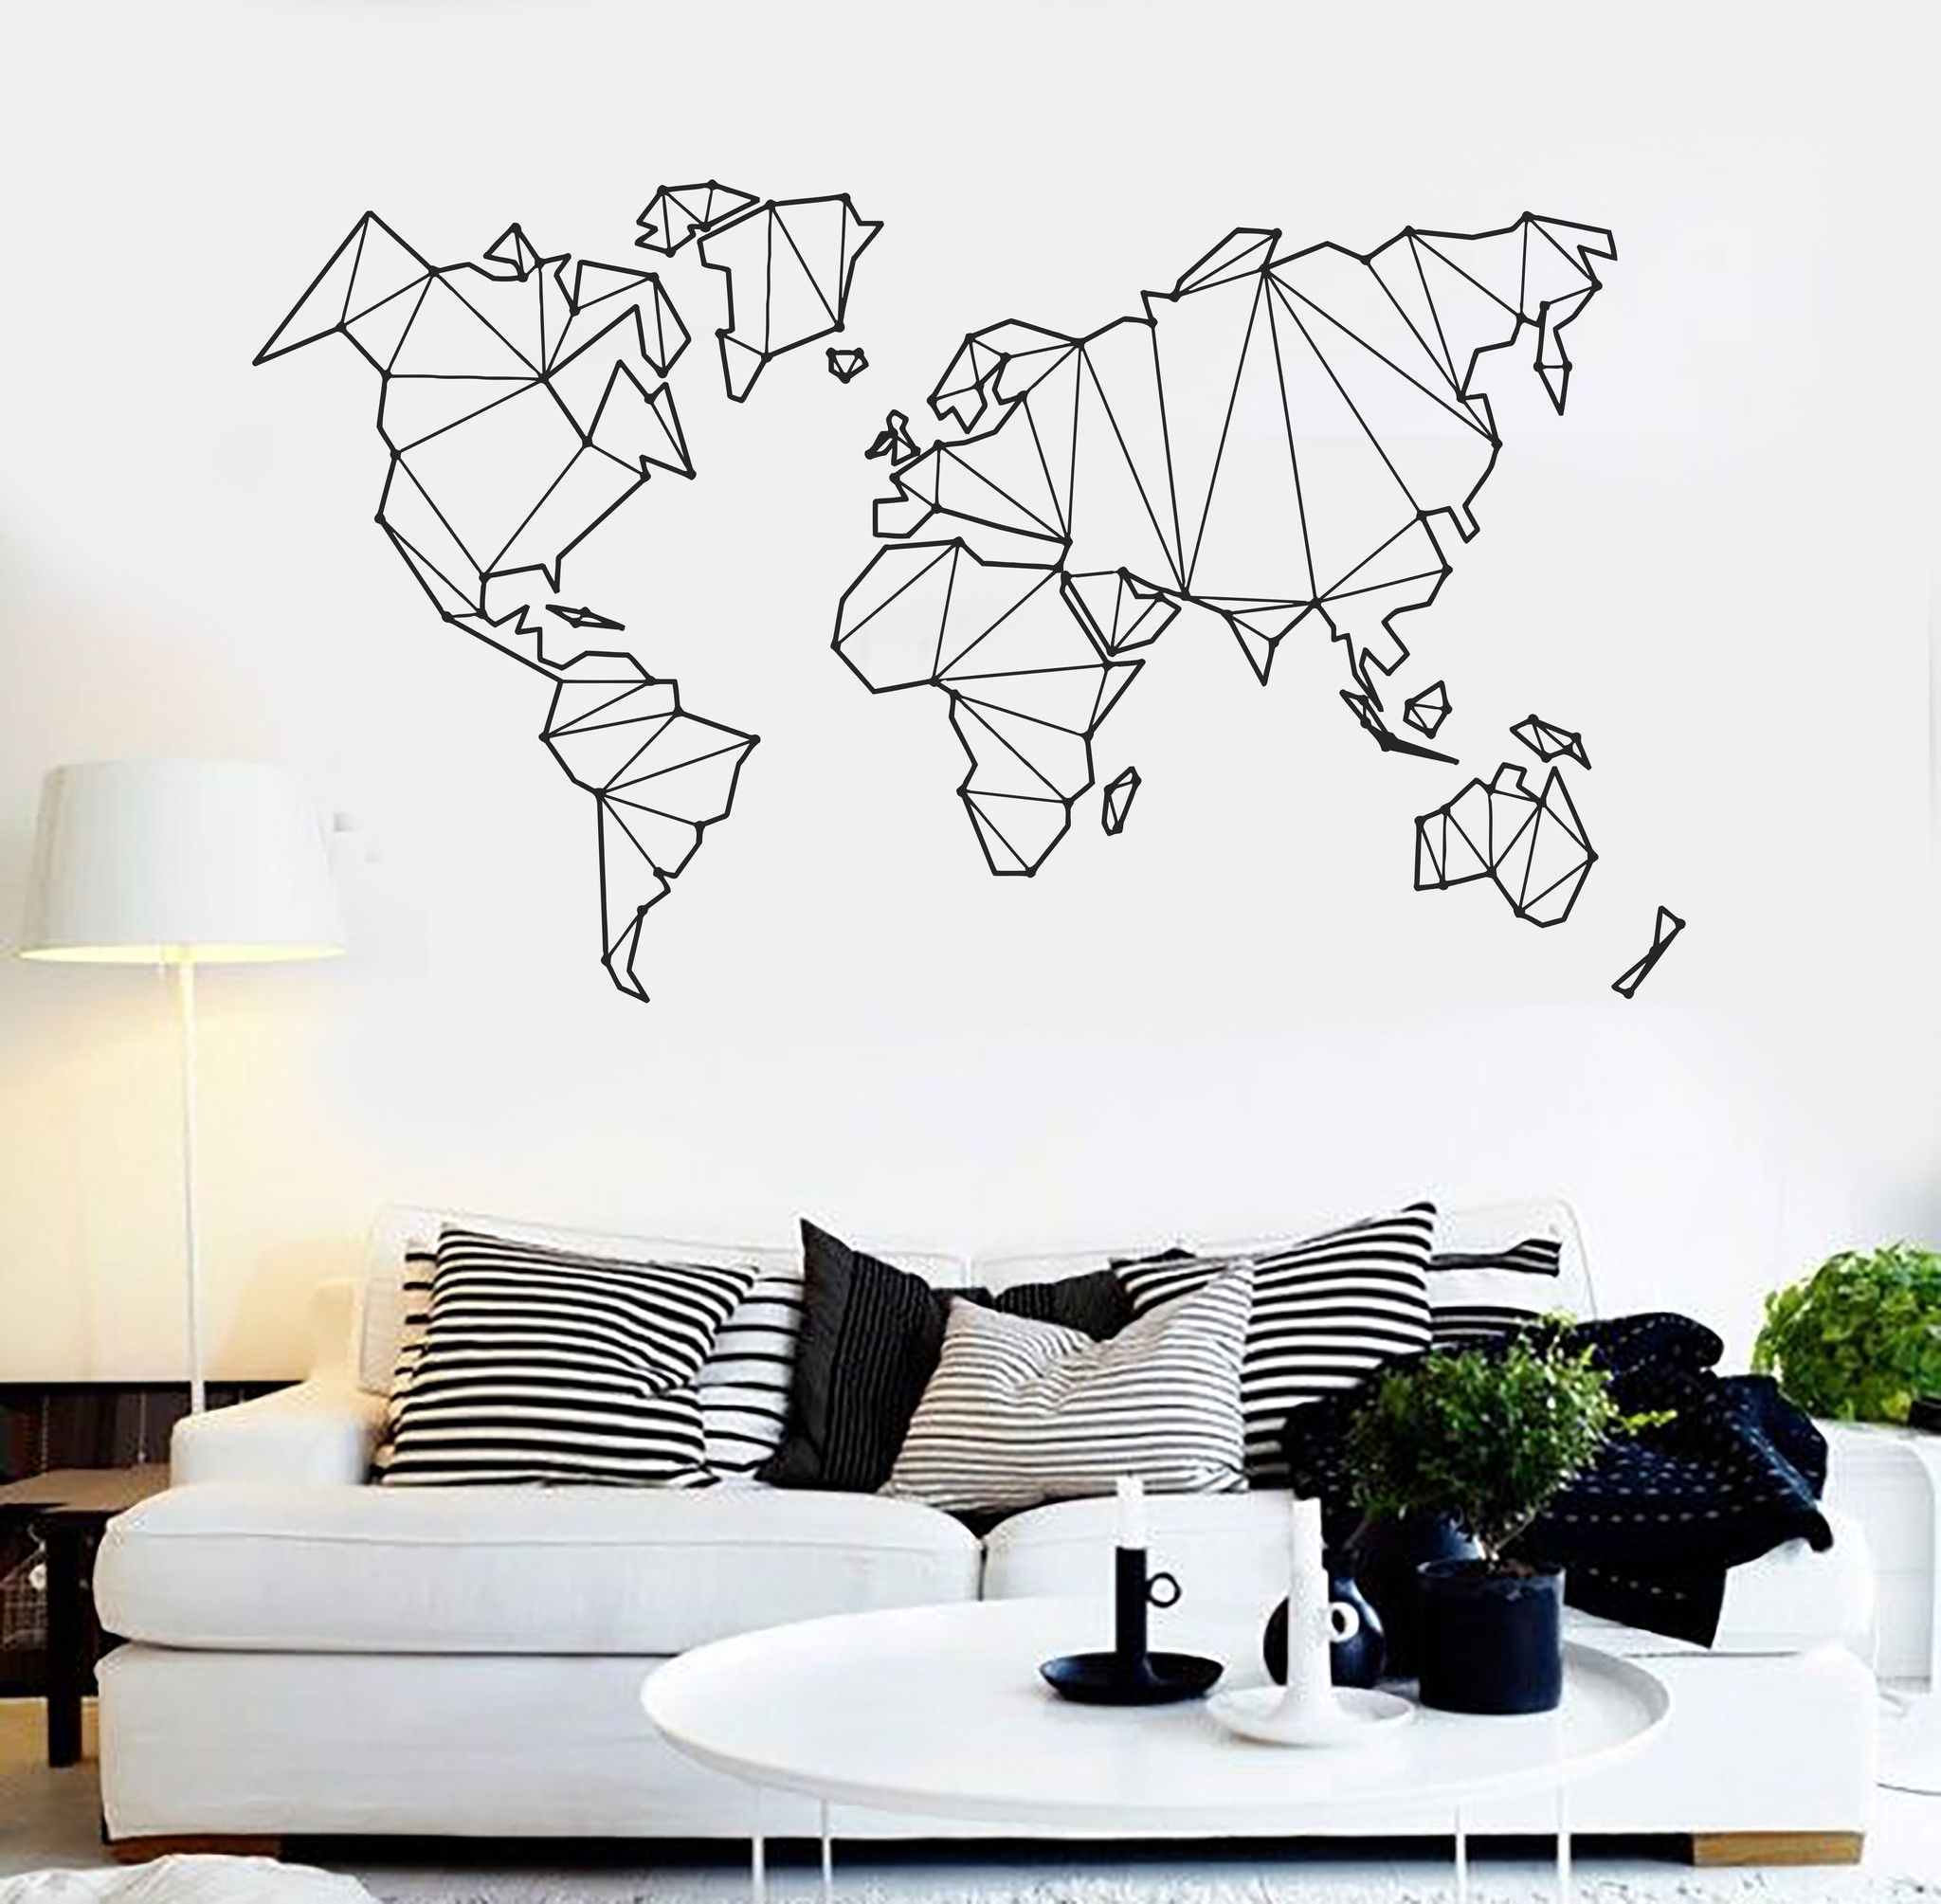 Vinyl Wall Decal Abstract Map World Geography Earth Stickers throughout Most Popular Abstract Art Wall Decal